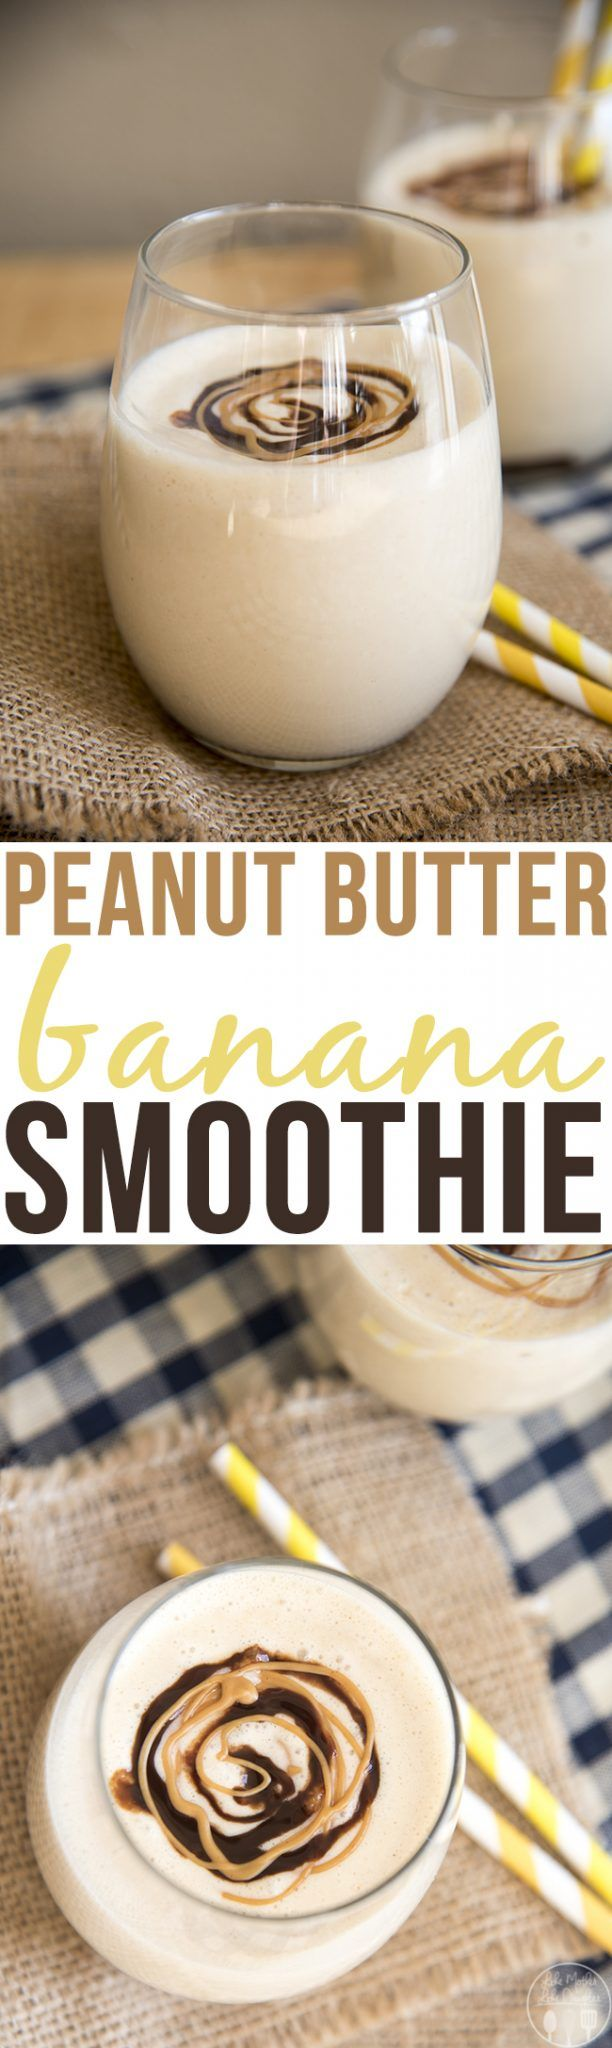 Peanut Butter Banana Smoothie - This deliciously creamy smoothie is only 5 ingredients, and blends together in just minutes. Its got the perfect peanut butter and banana flavors for a delicious smoothie everyone will love!